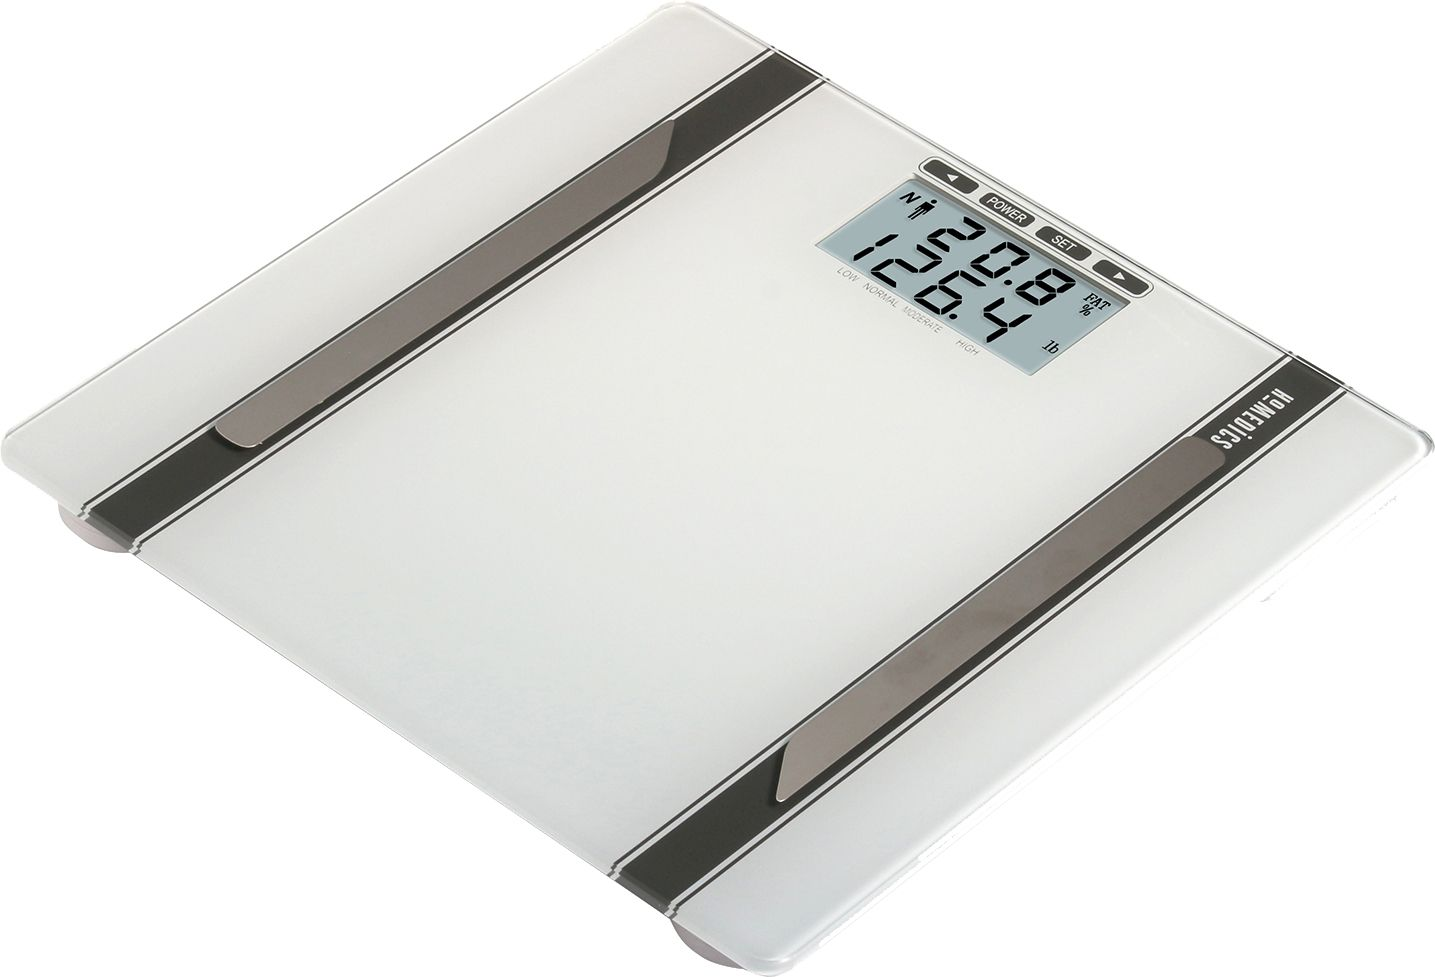 Homedics White Scale Body Composition Yzer